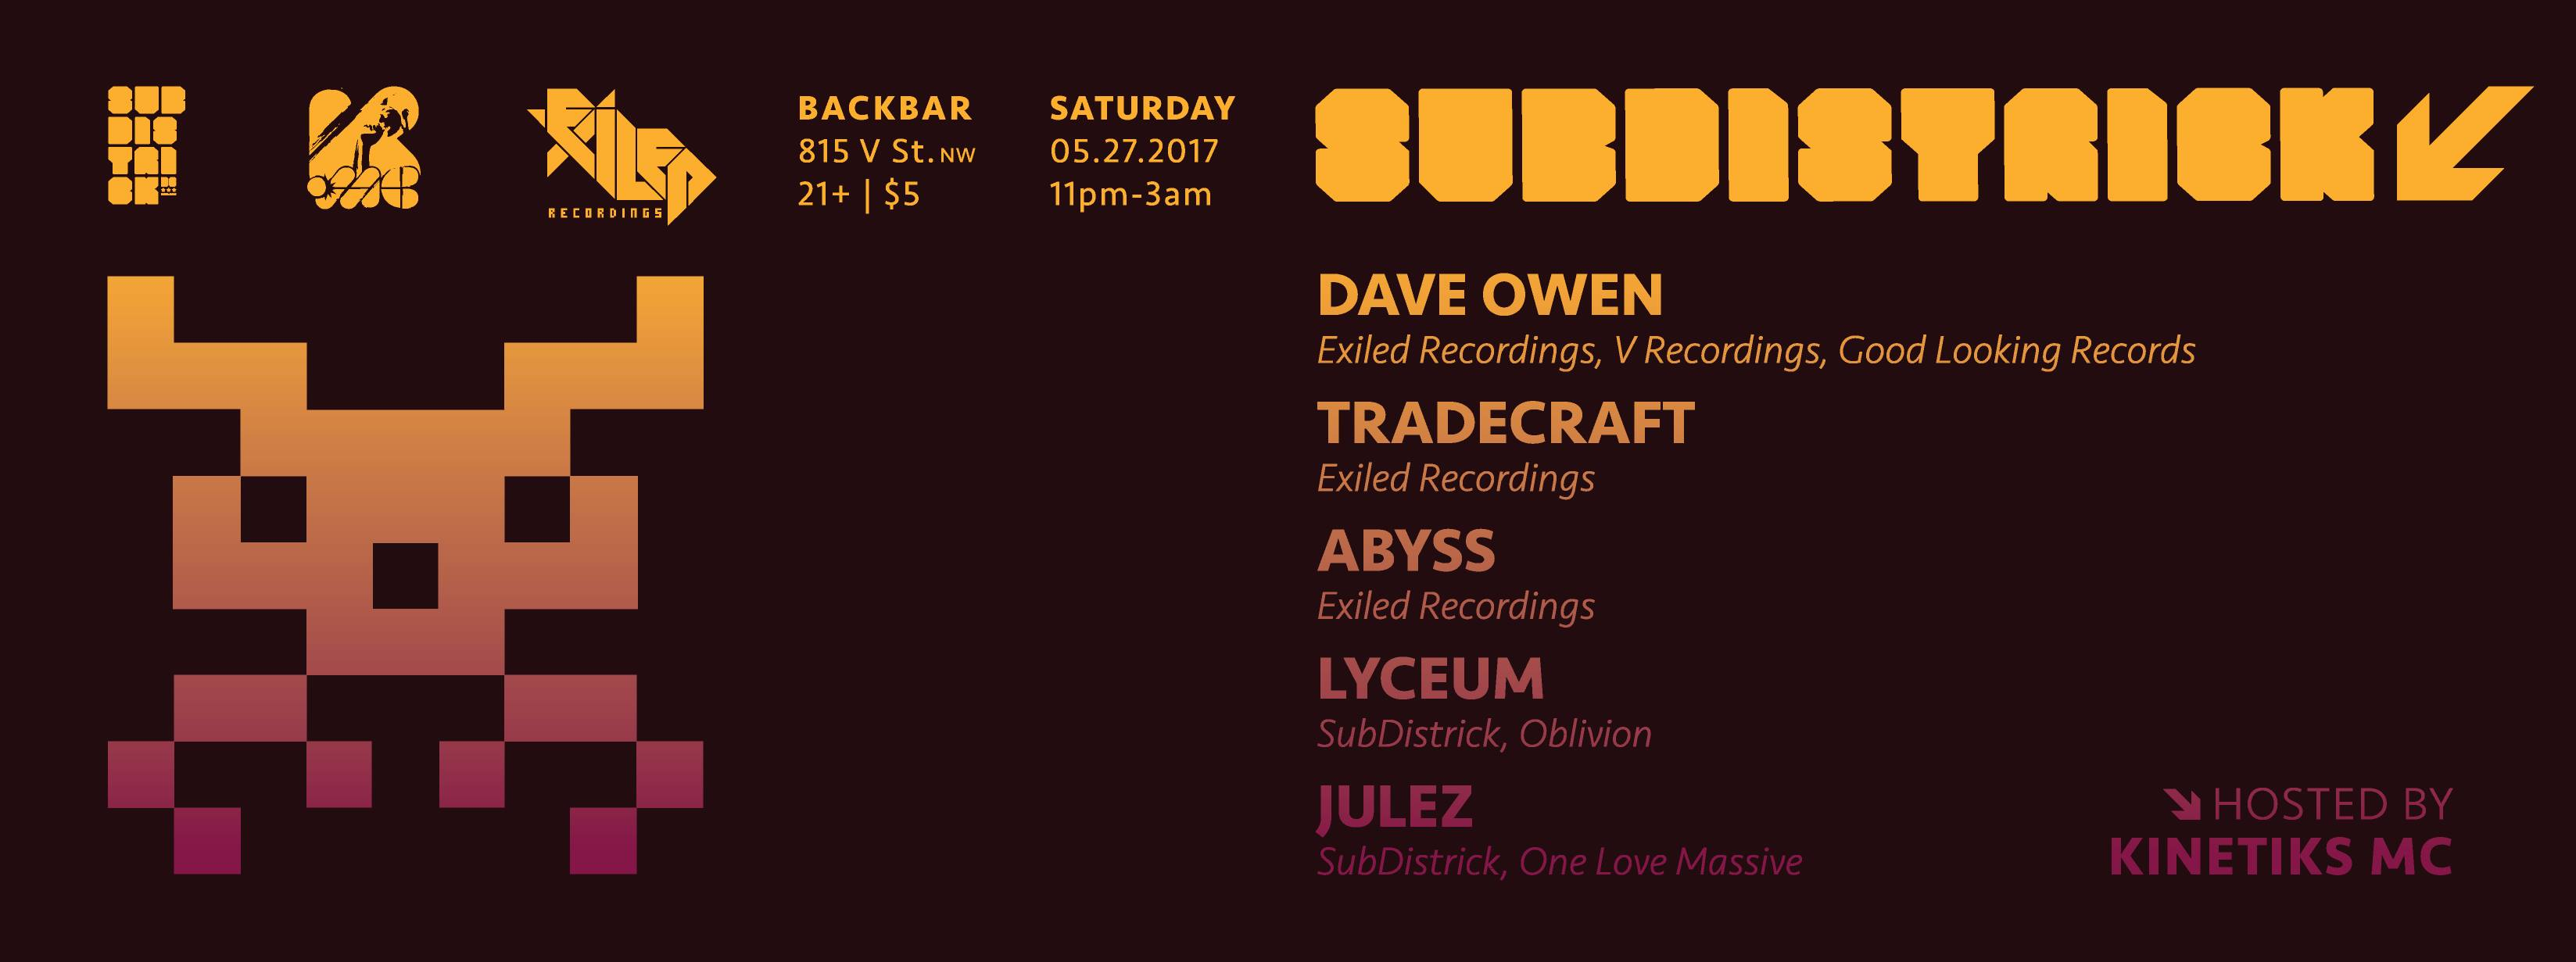 SubDistrick May 2017! Exiled Recordings takeover feat. DAVE OWEN, Tradecraft D&B, Abyss, Lyceum, Julez & Kinetiks MC! [05.27.17]